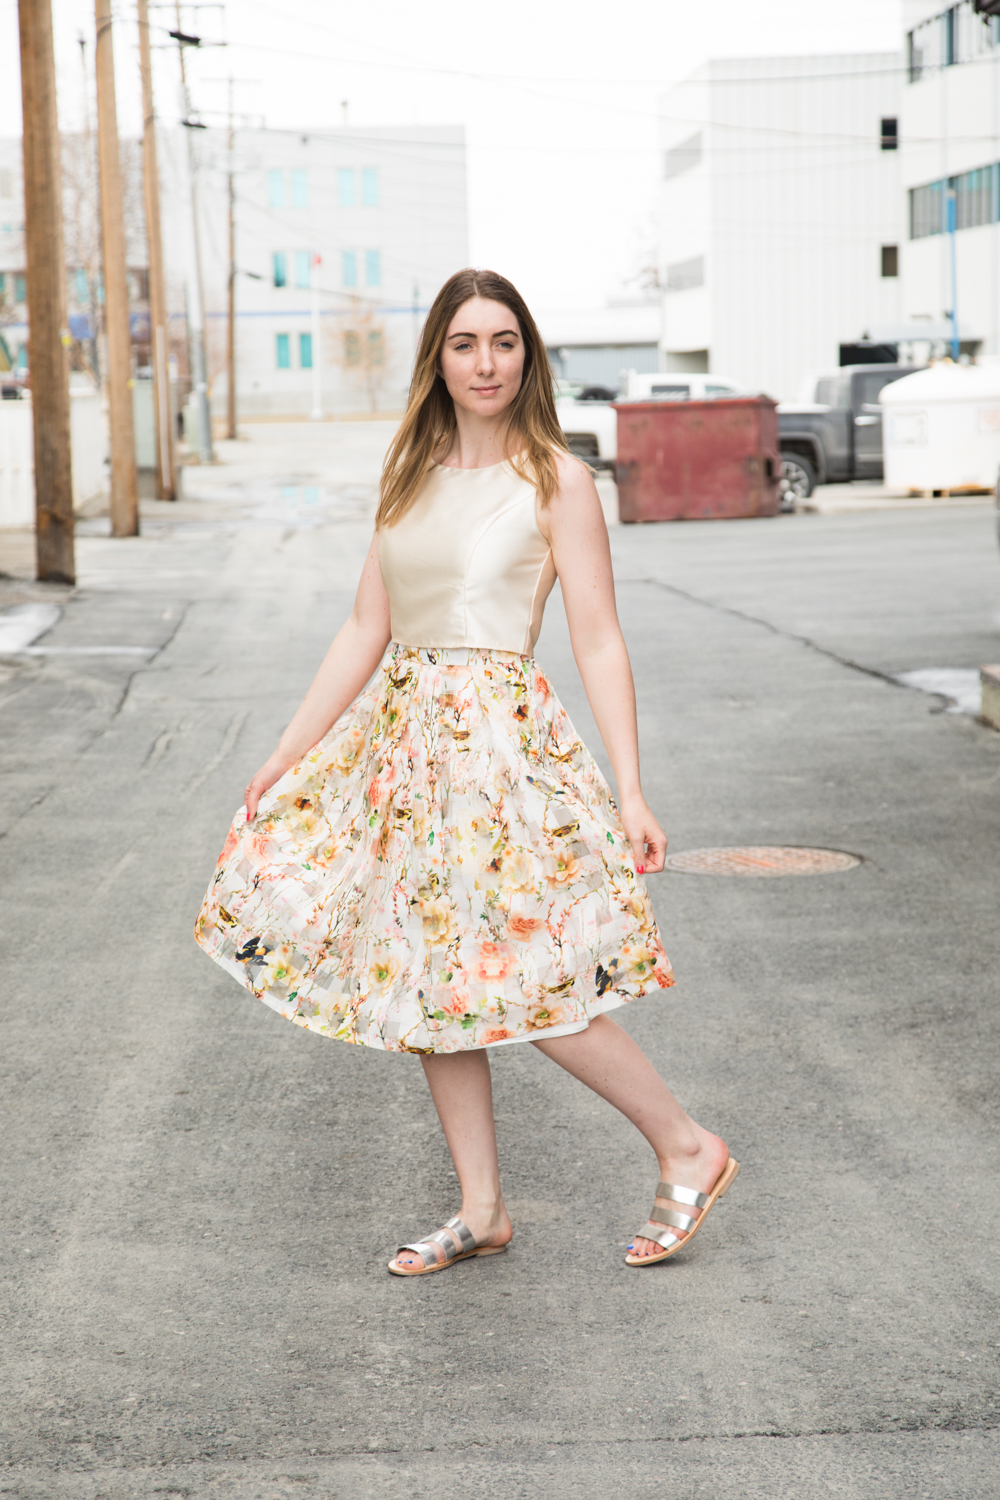 Apricot floral skirt and nude crop top